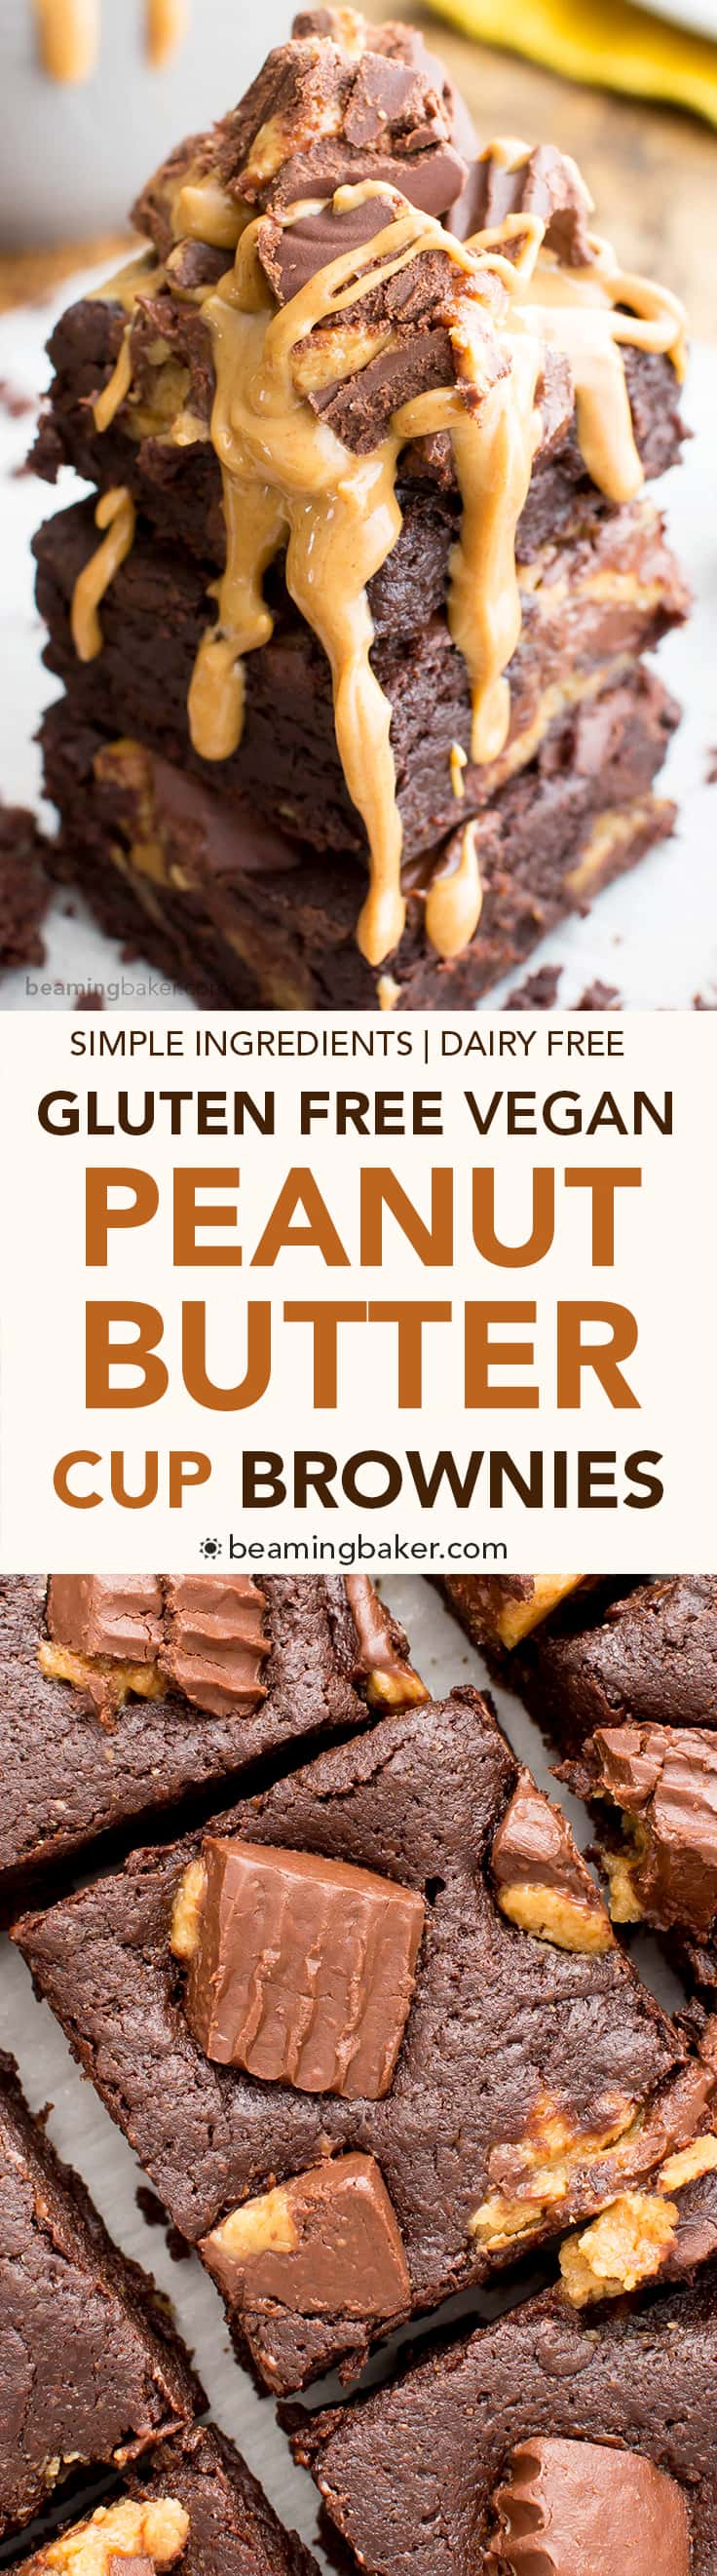 Gluten Free Vegan Peanut Butter Cup Brownies (V+GF): rich, fudgy, decadent brownies stuffed with delicious peanut butter cups. #Vegan #GlutenFree #DairyFree | BeamingBaker.com